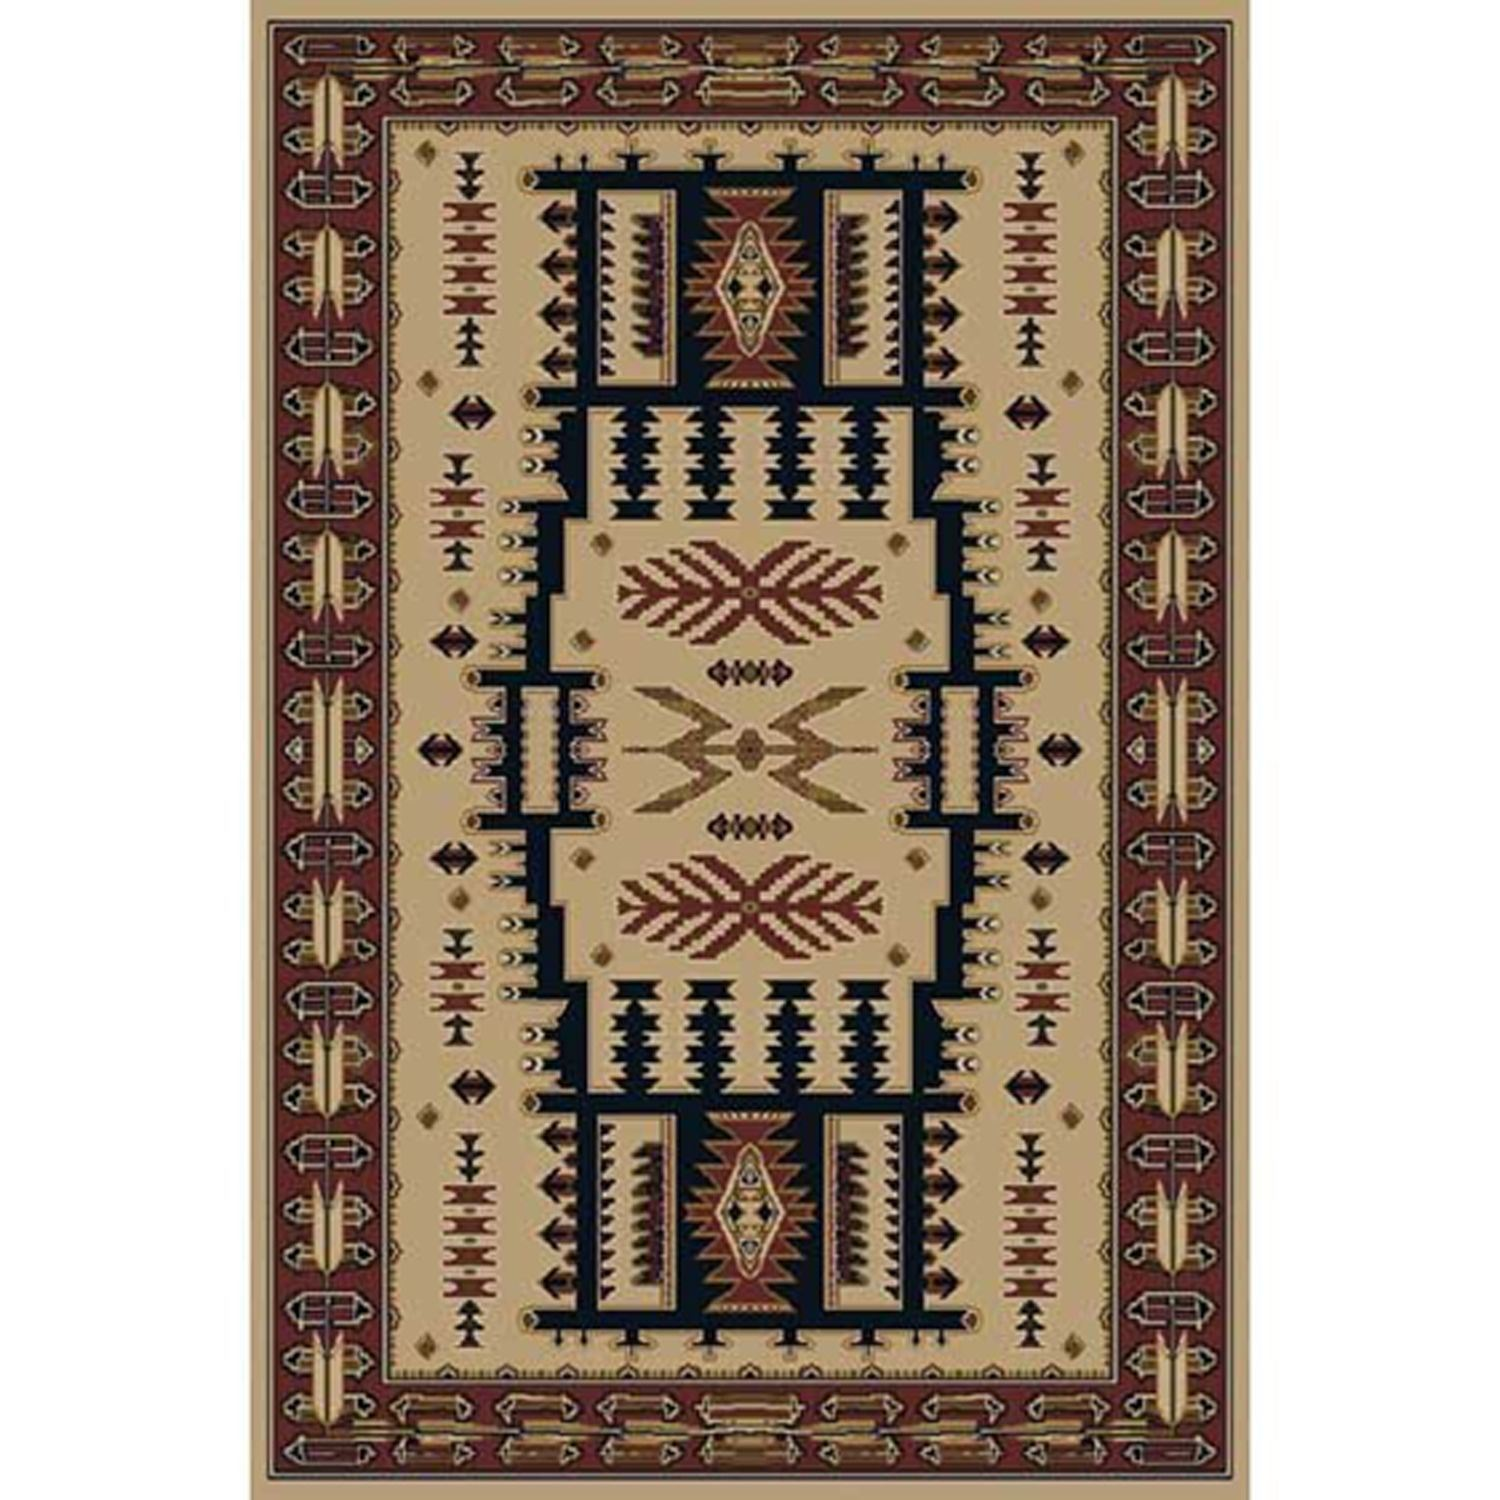 Mountain Country Rustic Linen 8x10 Rug Orian Rugs 166